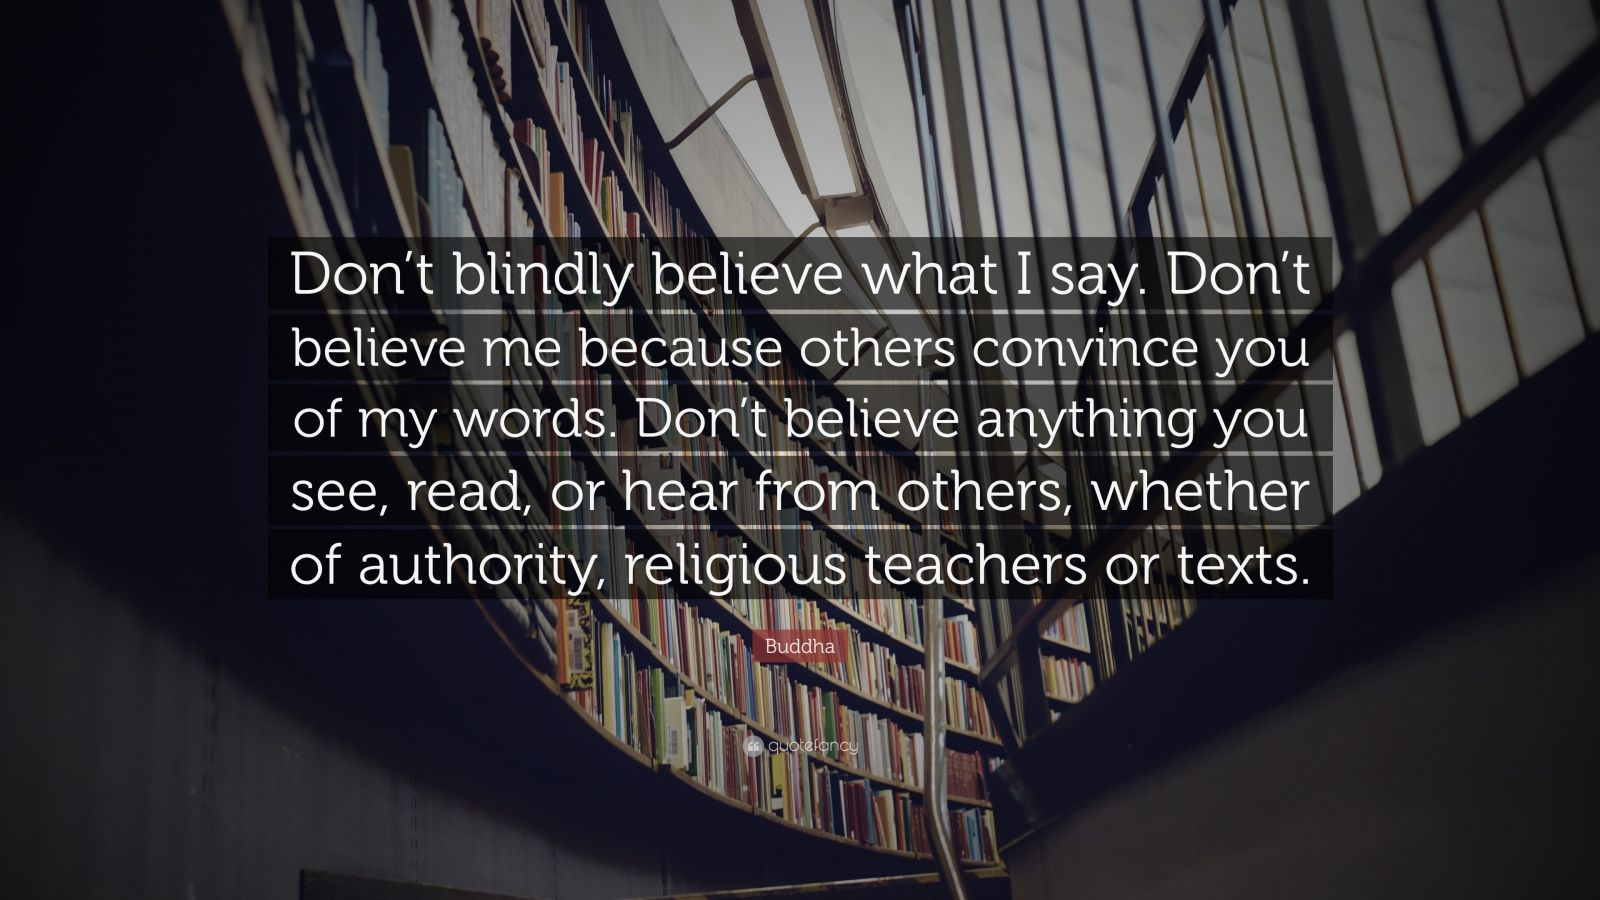 """Buddha Quote: """"Don't blindly believe what I say. Don't believe me because others convince you of my words. Don't believe anything you see, read, or hear from others, whether of authority, religious teachers or texts."""""""